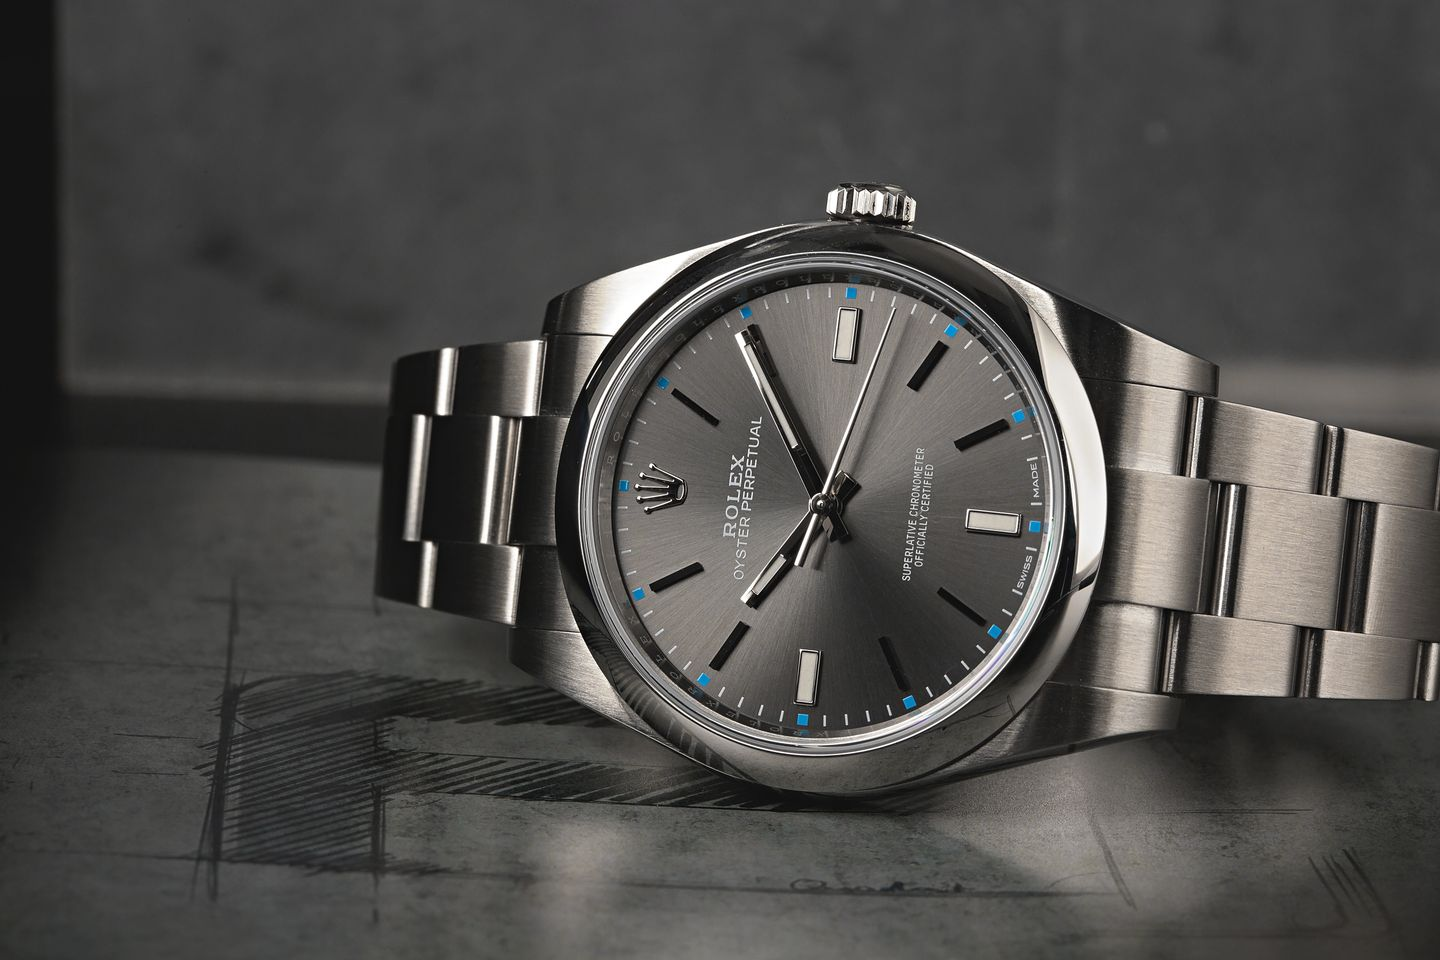 Rolex Oyster Perpetual sports watch